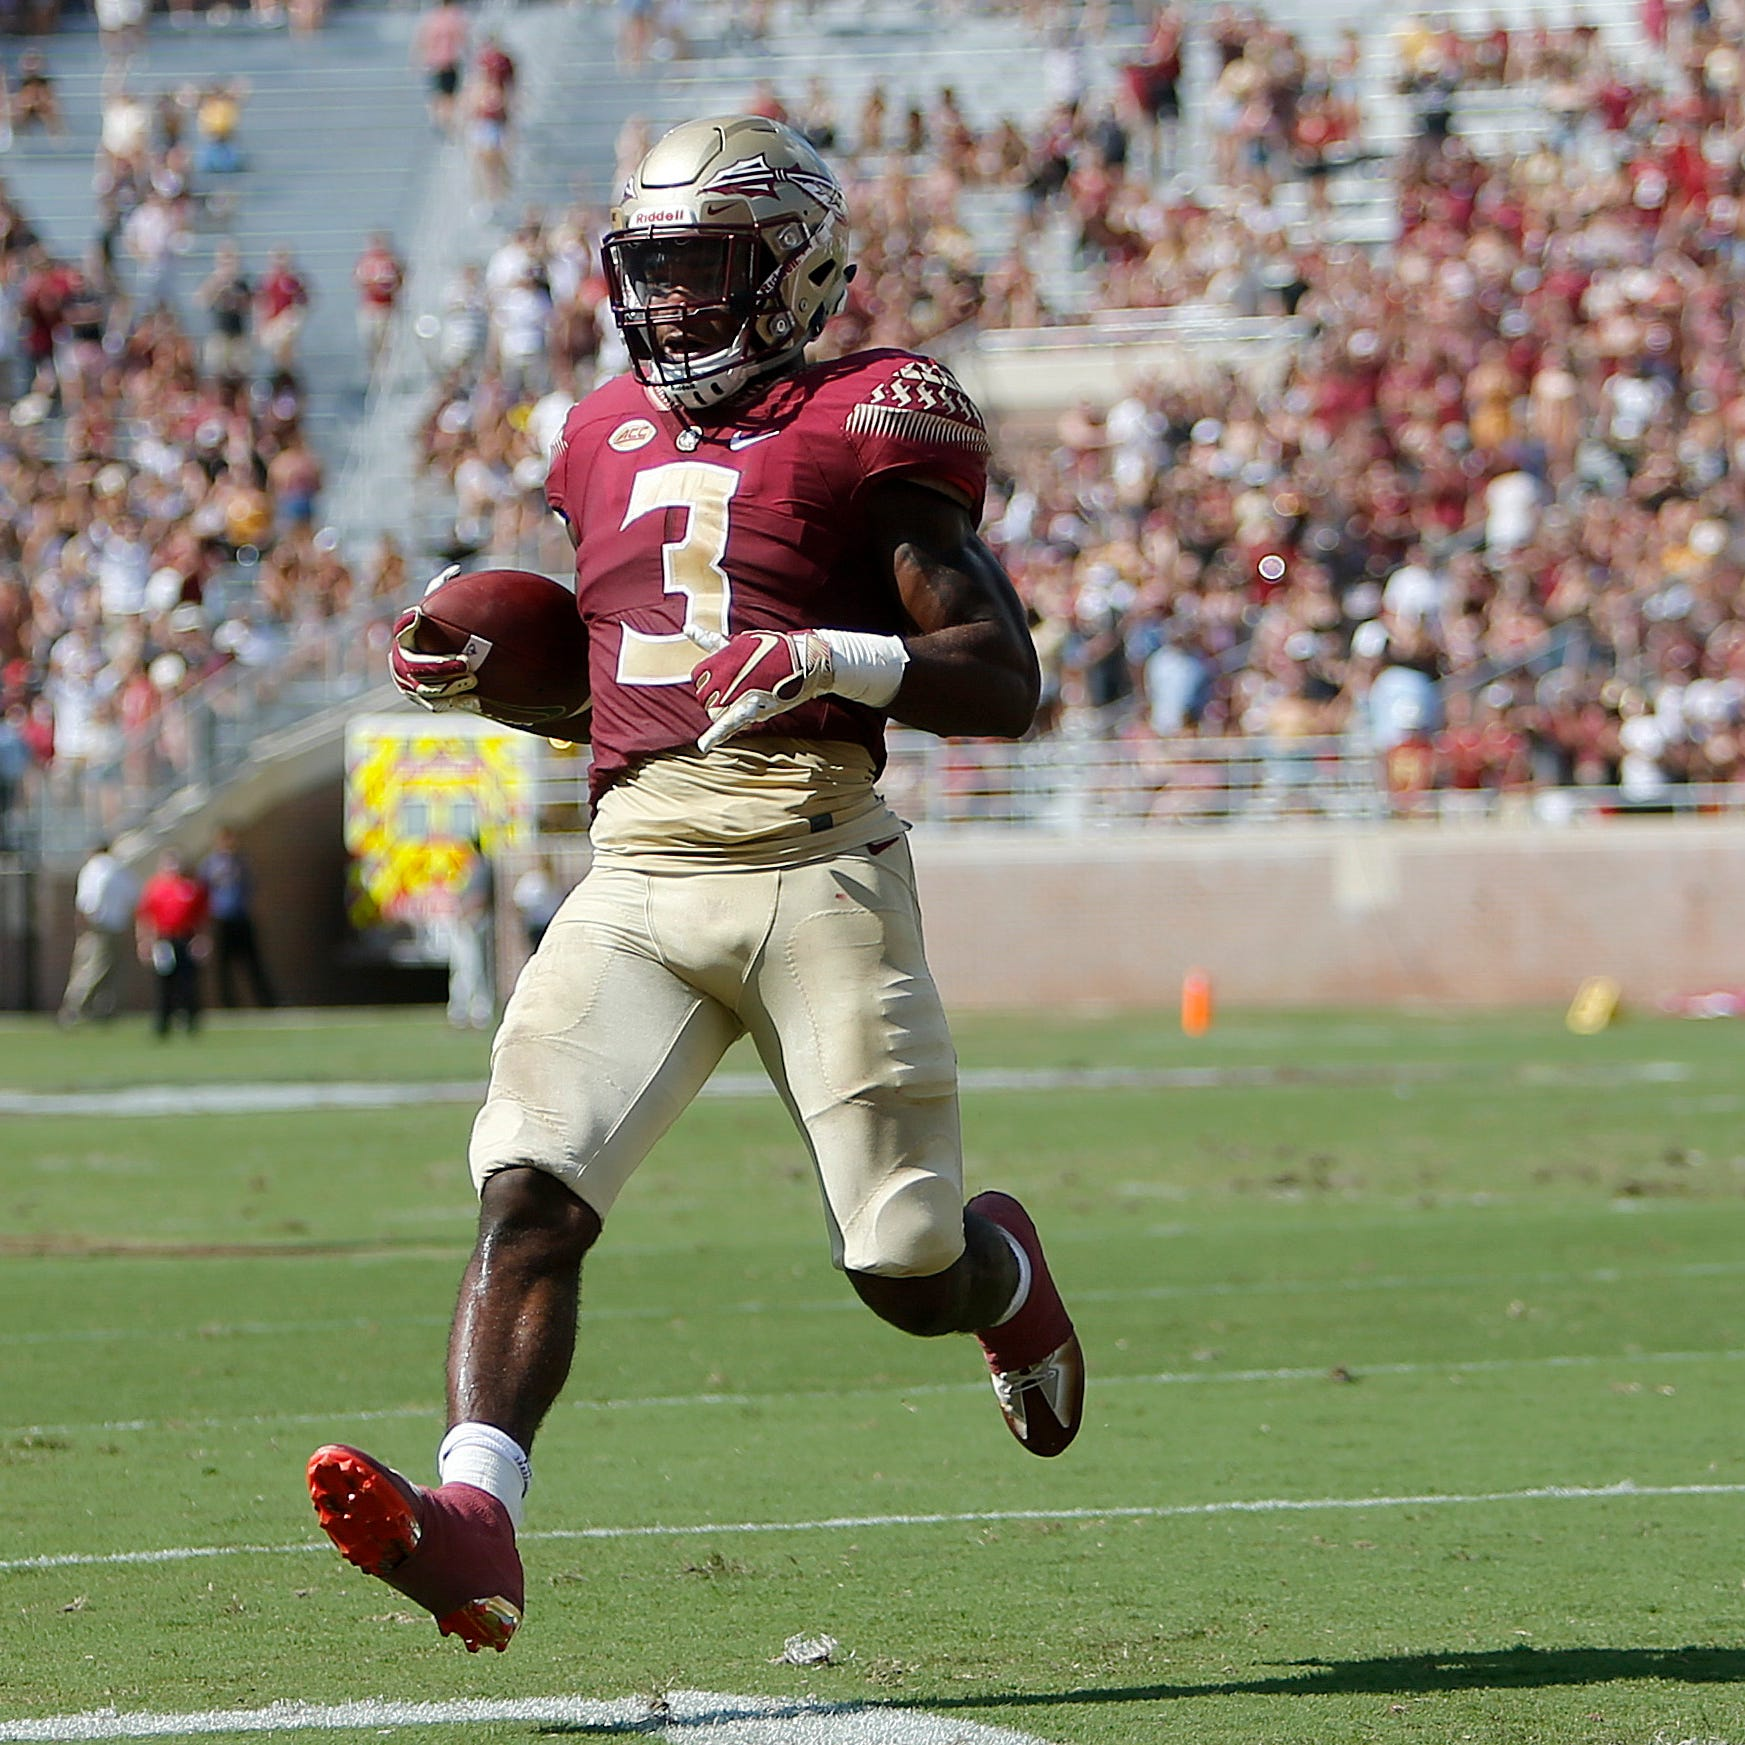 Florida State shows glimpses of what offense can be | Wayne McGahee